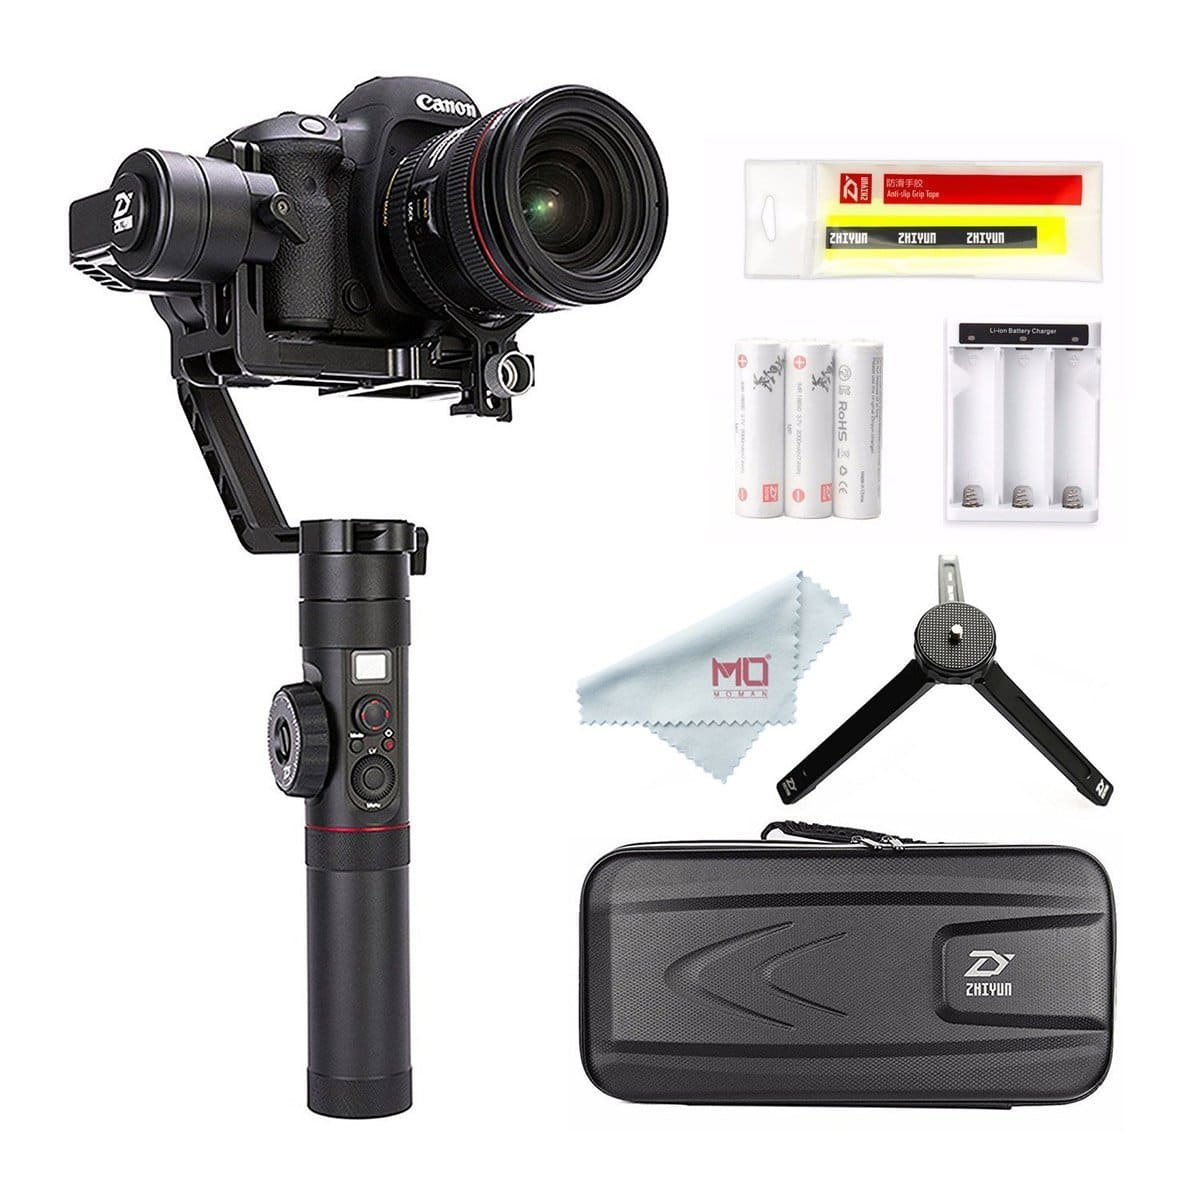 Crane 2 3-Axis Gimbal Stabilizer for DSLR Camera up to 7 Lb, Featuring Follow Focus for Canon, 18 Hrs Run-time, OLED Display  $639.2